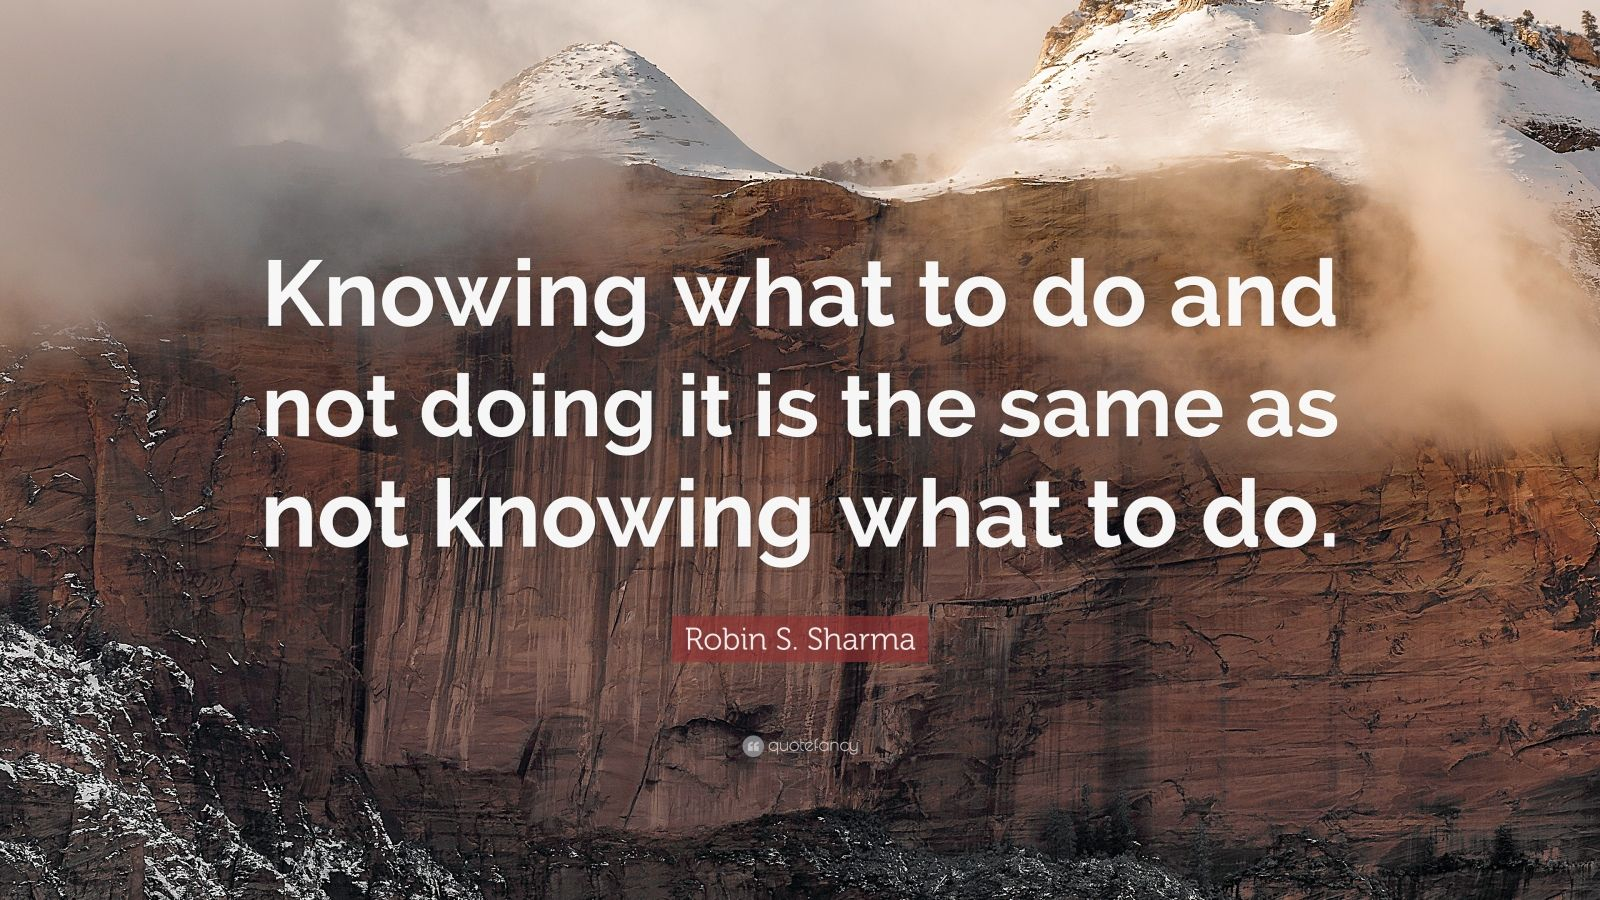 Theodore Roosevelt Wallpaper Quote Robin S Sharma Quote Knowing What To Do And Not Doing